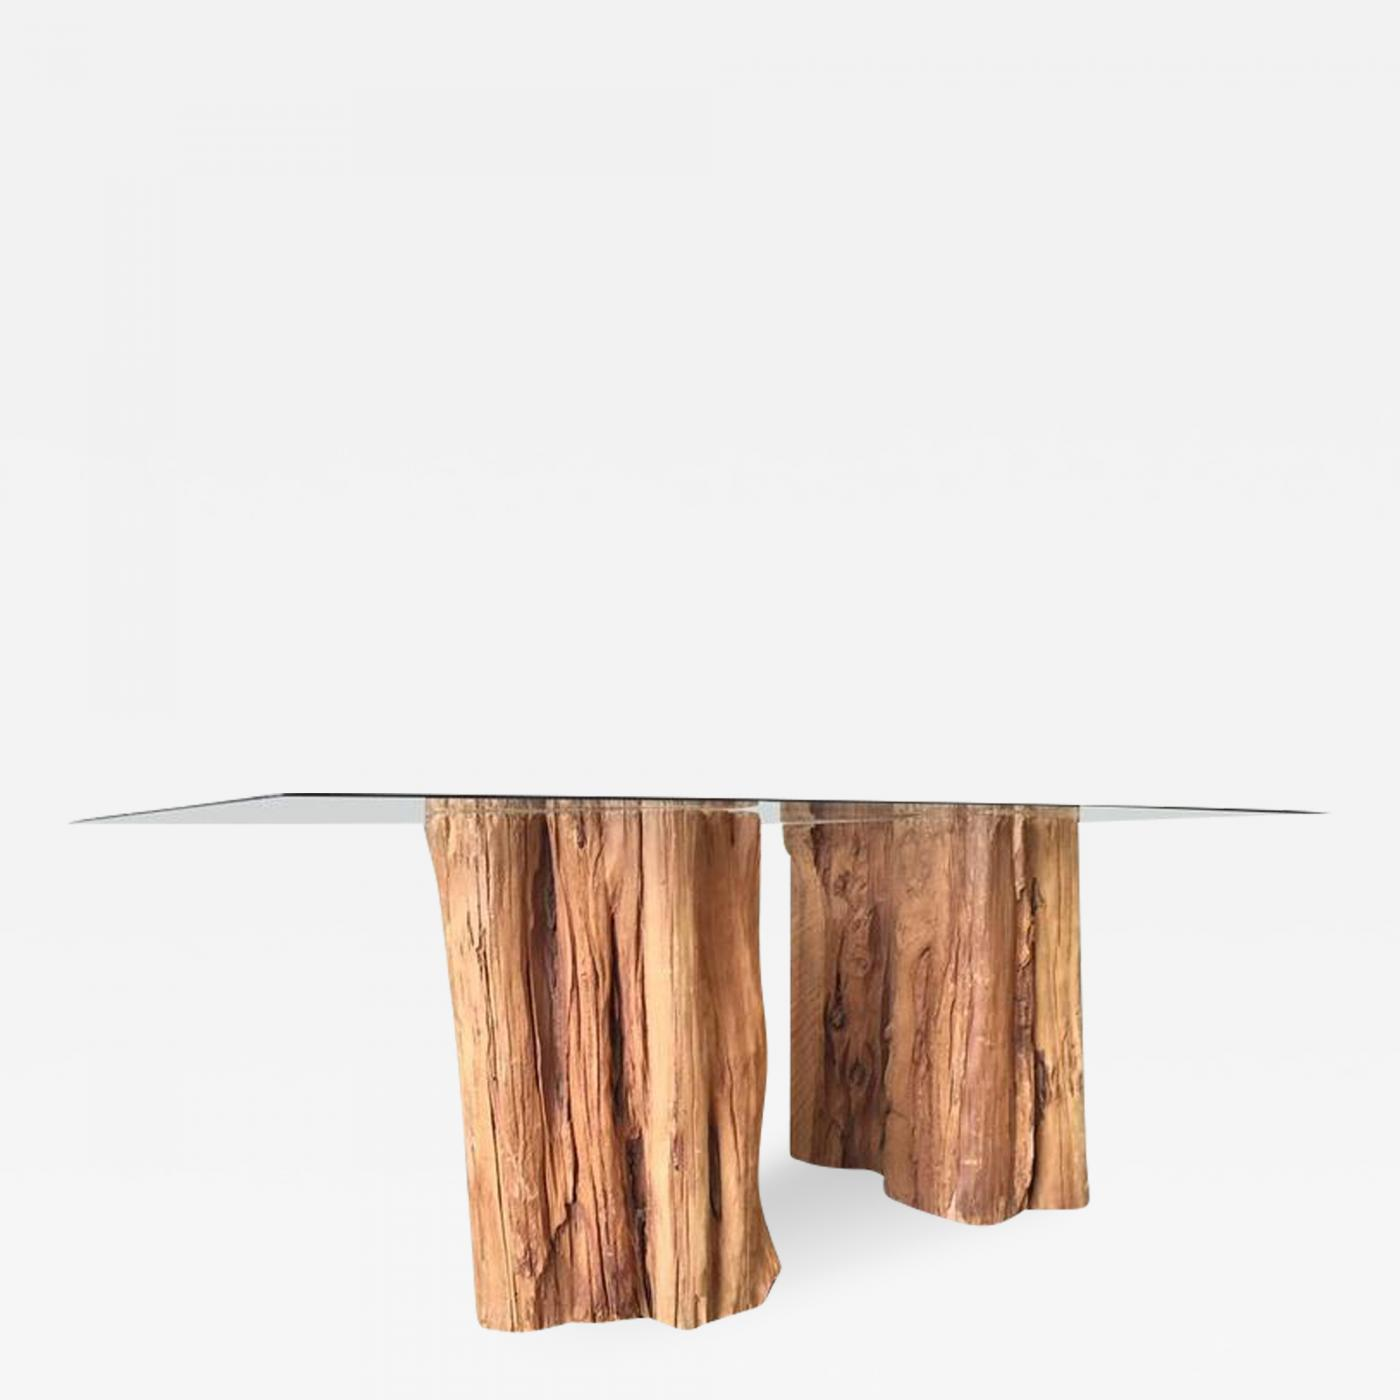 ipe wood trunk pedestal dining table with glass top